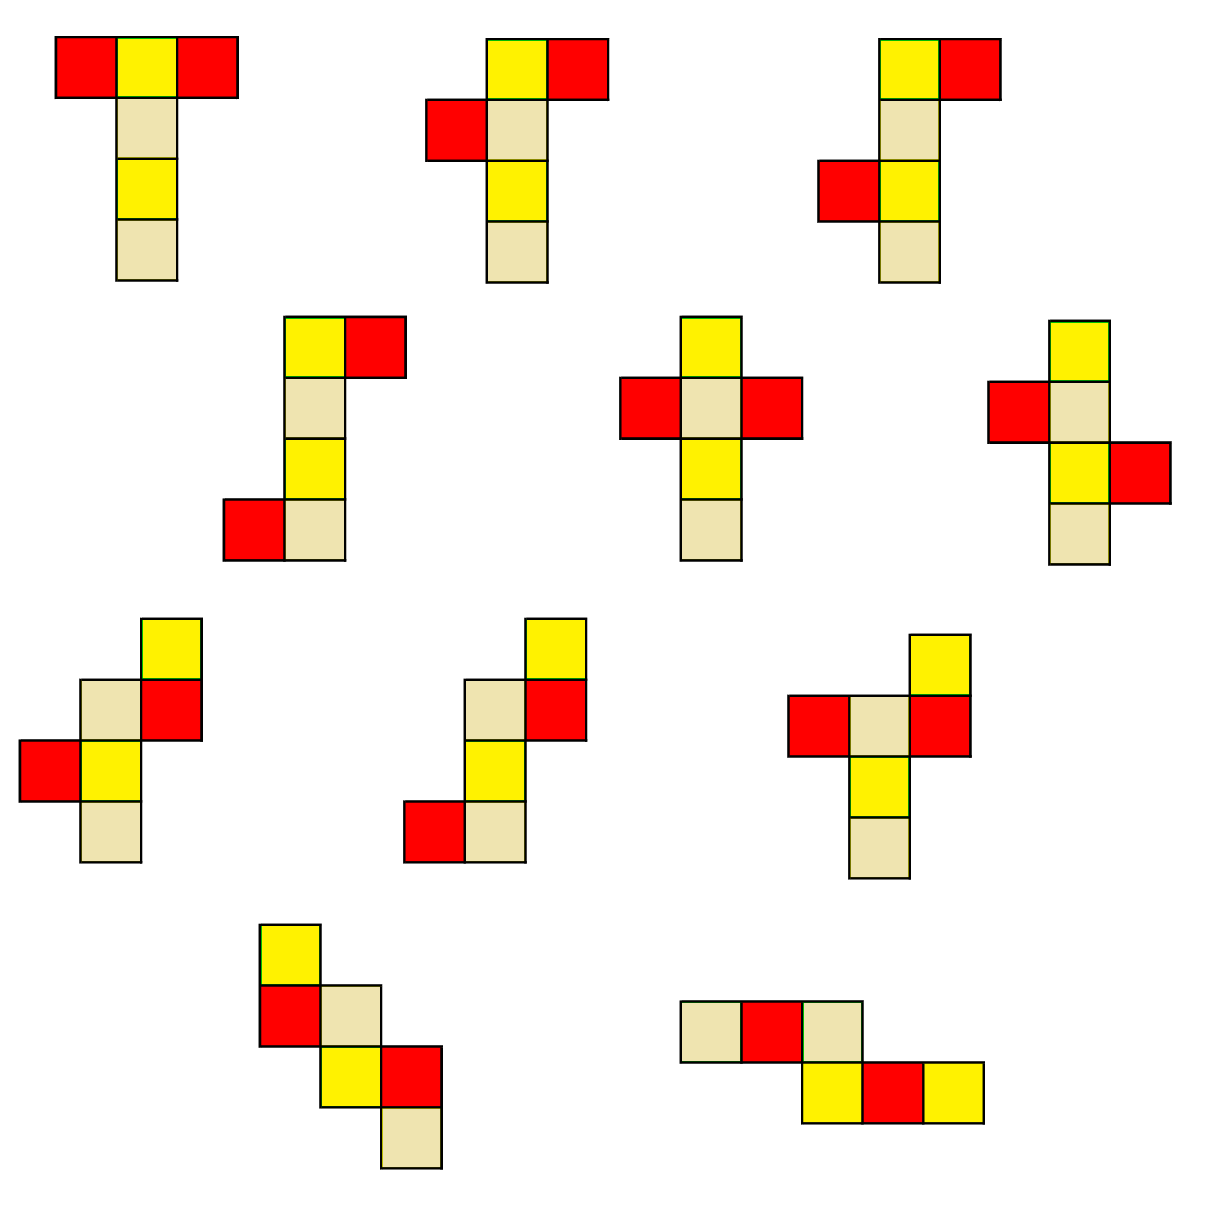 Nets Of Cube on How To Add Fractions 1 3 4